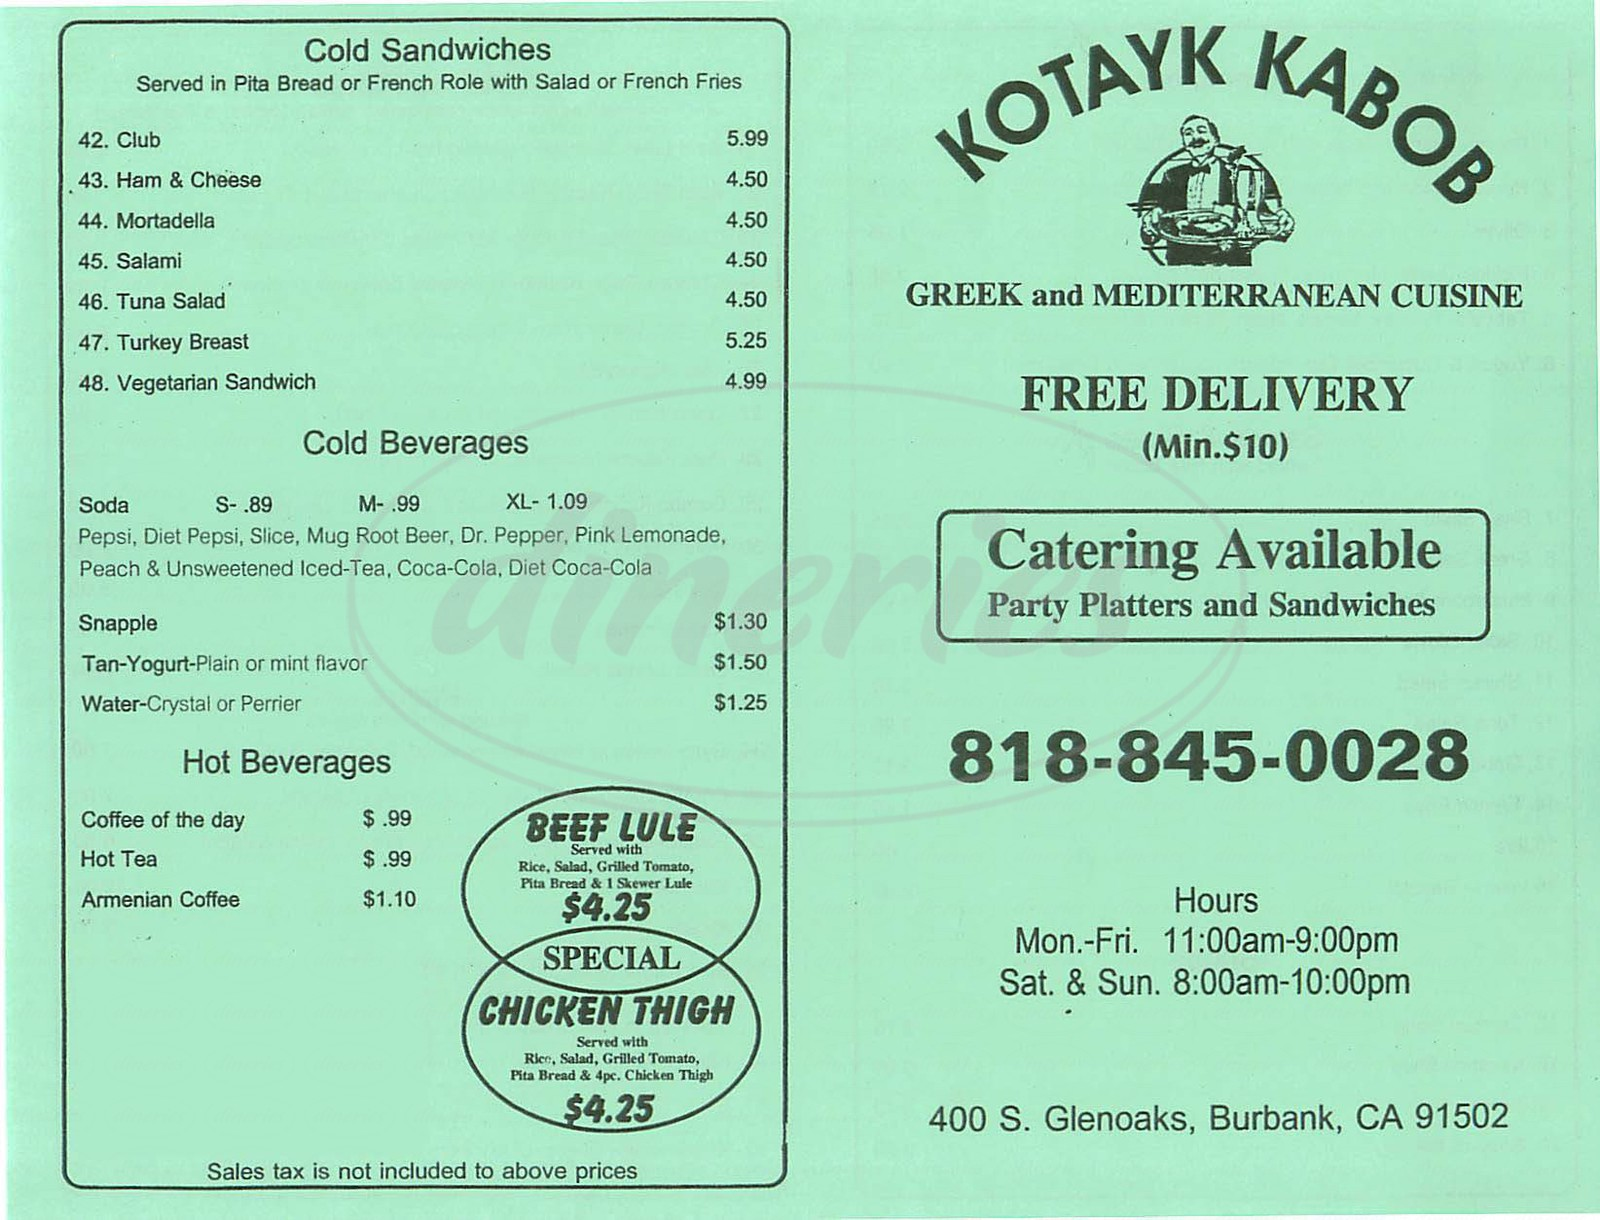 menu for Kotayk Kabob Deli